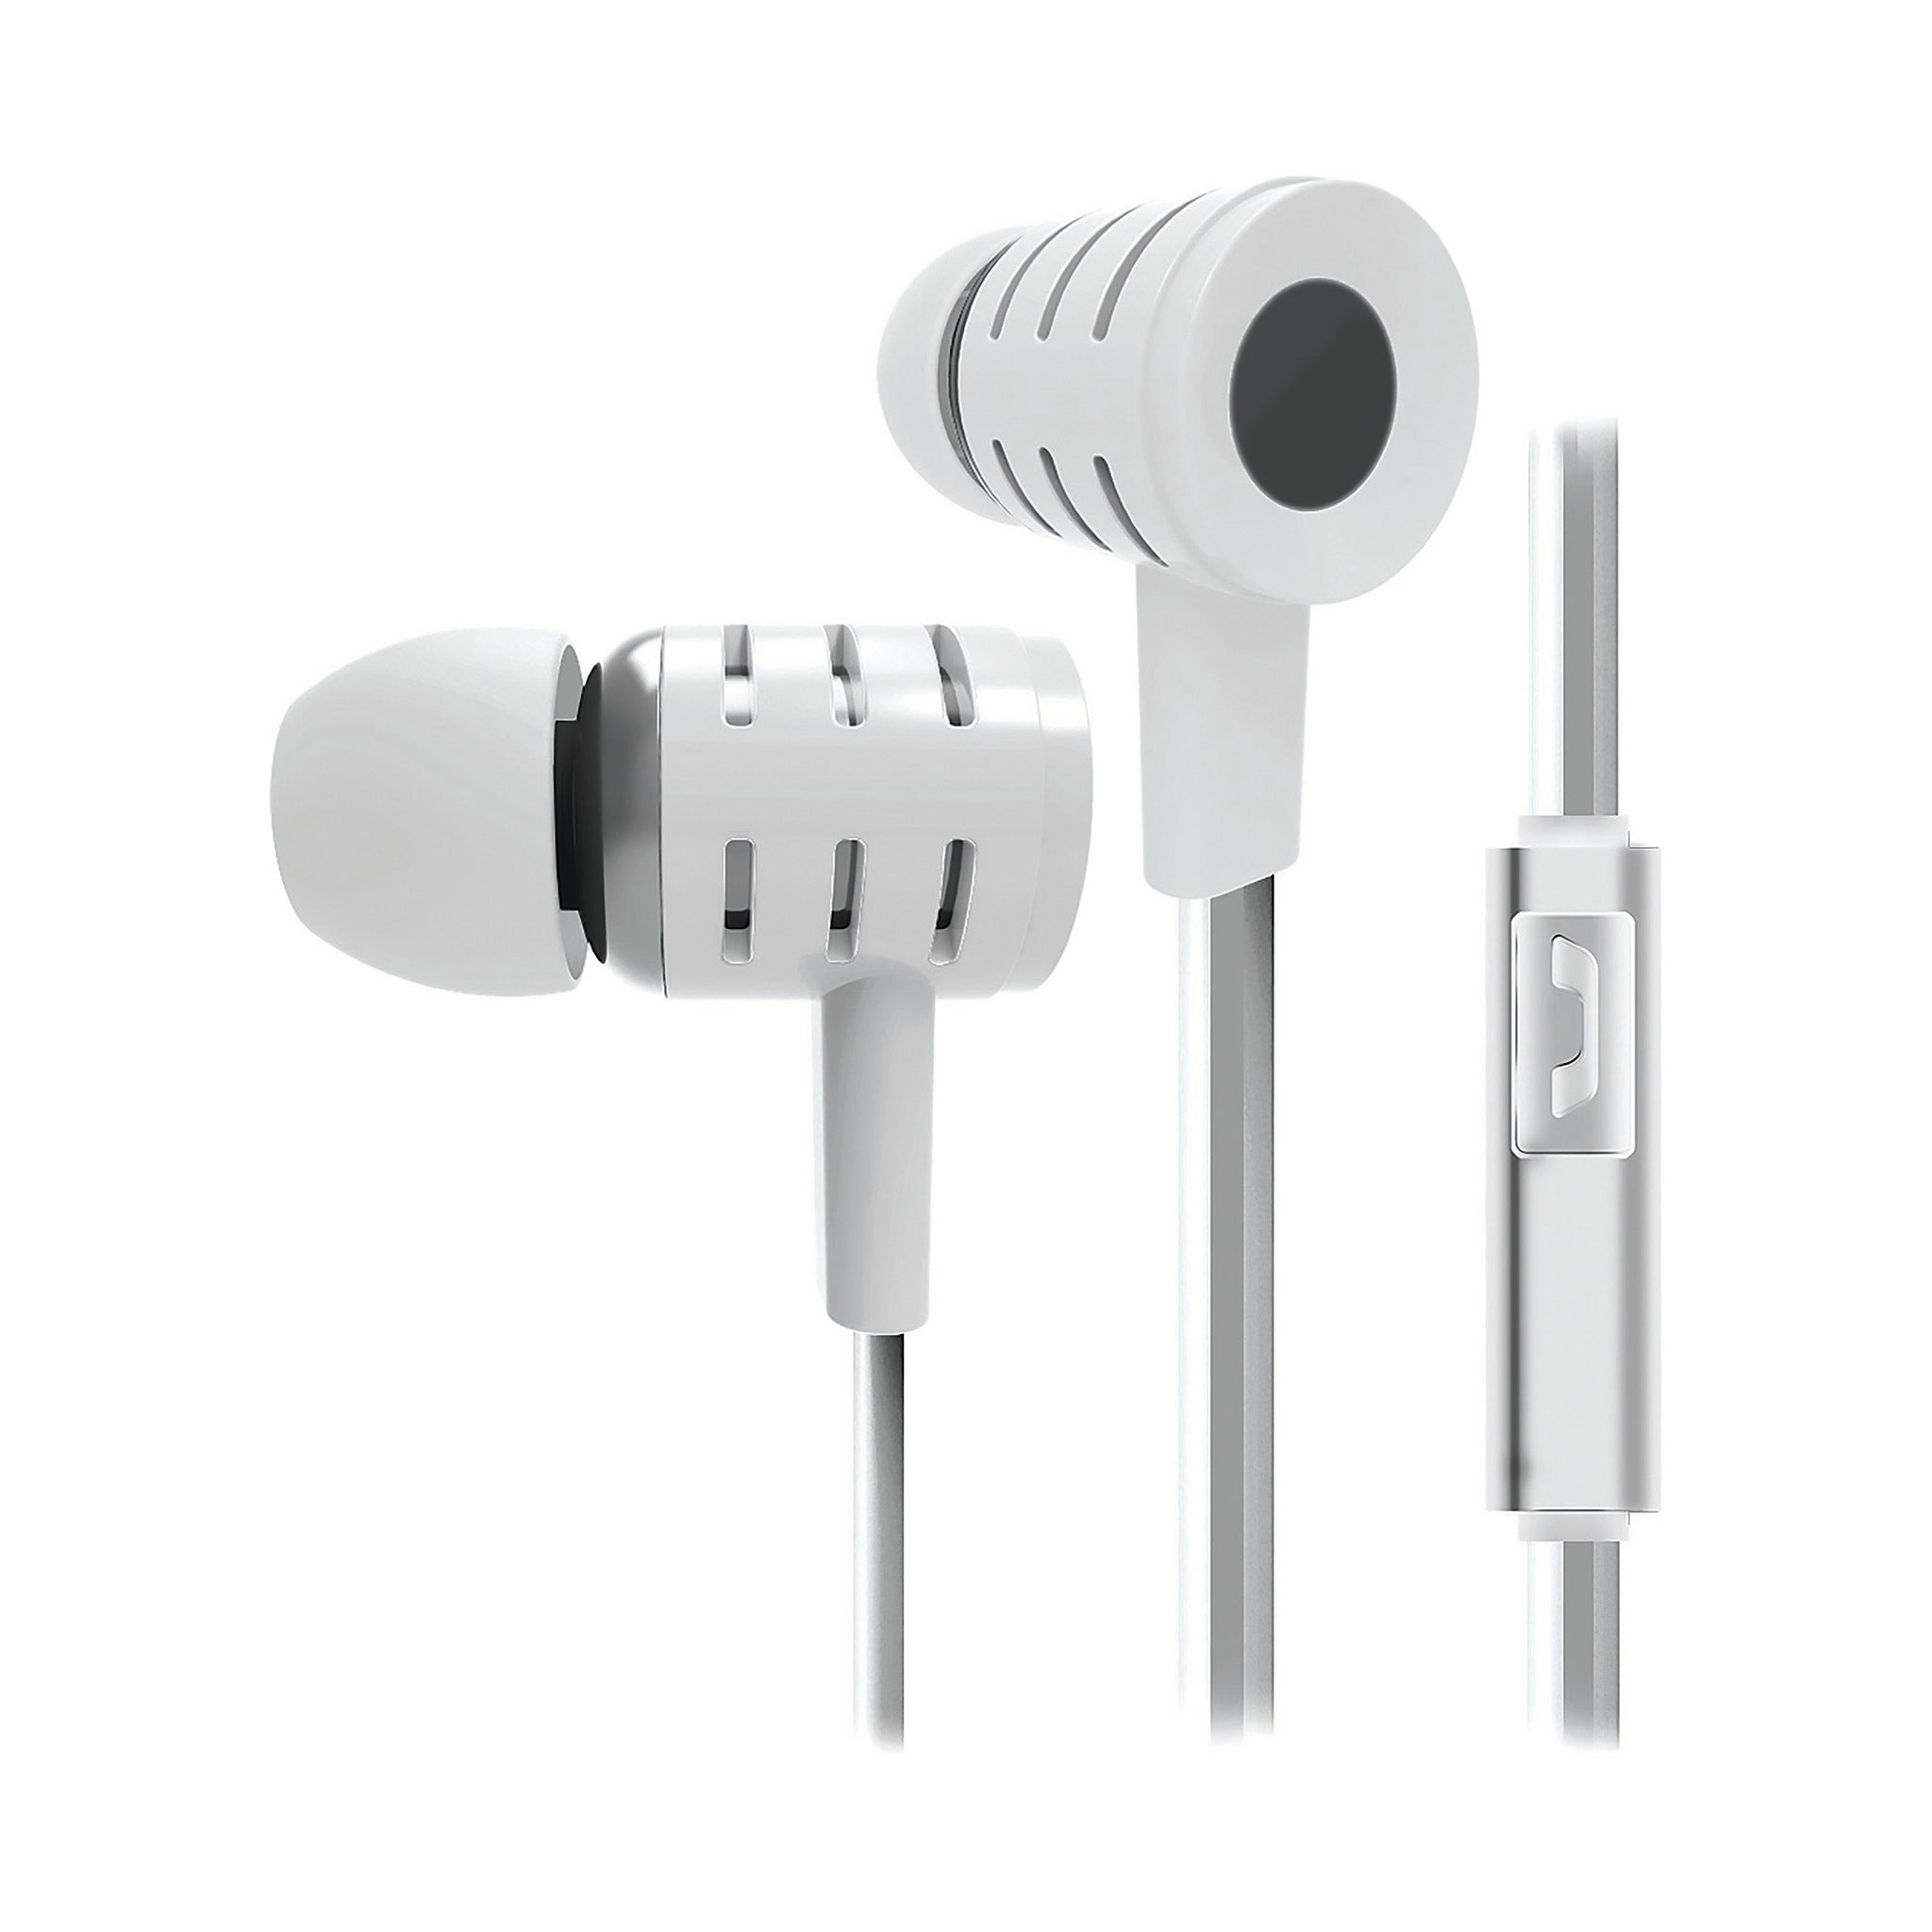 BLENDX Stereo Earbuds